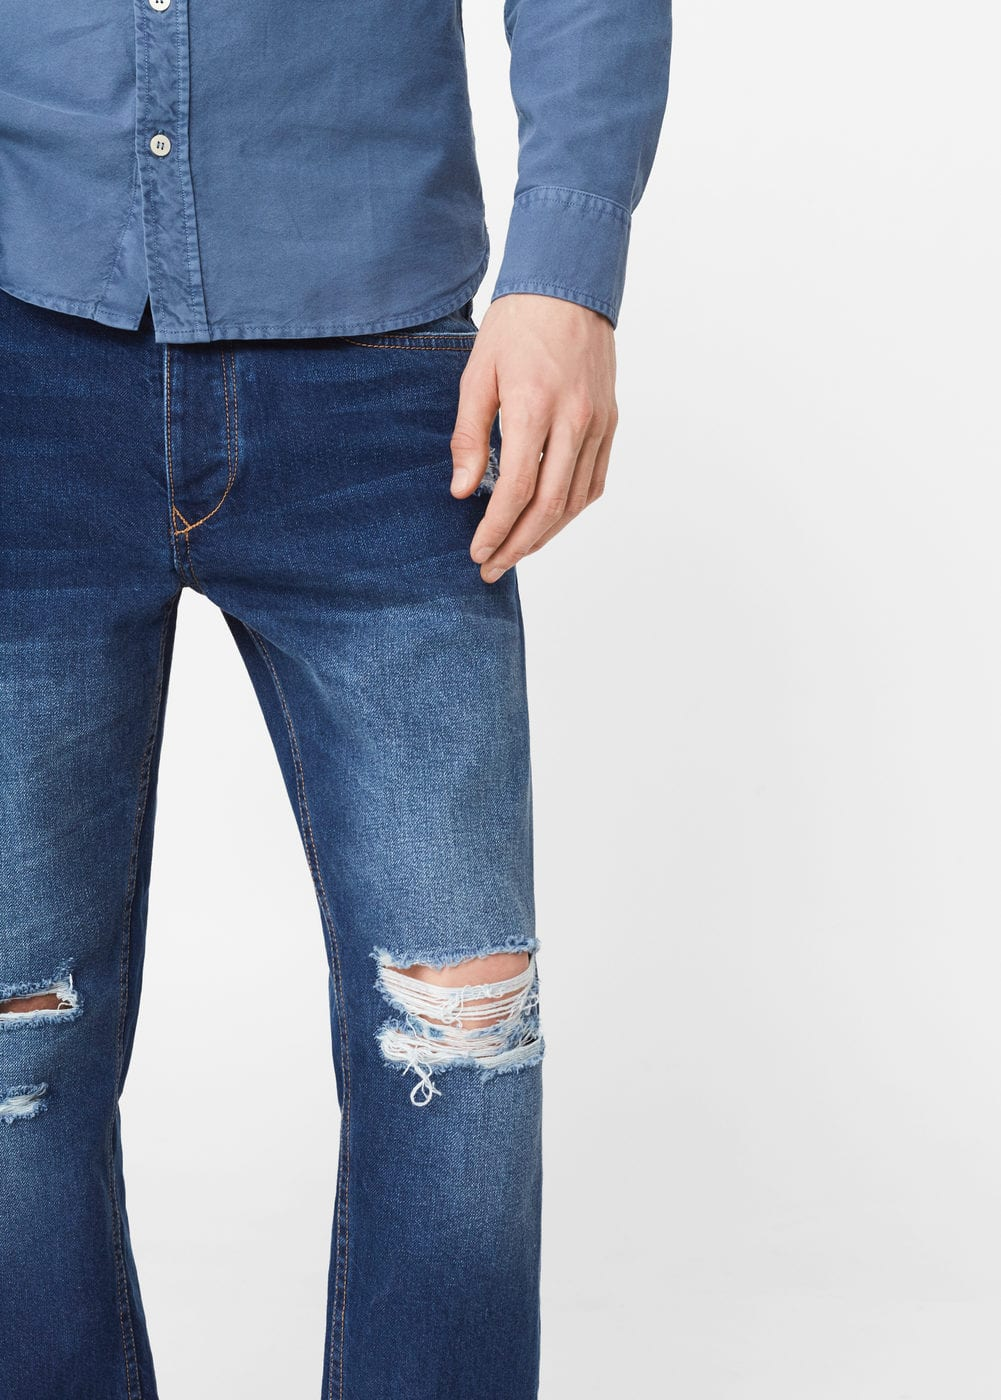 Jeans ethan slim-fit rotos decorativos | MNG